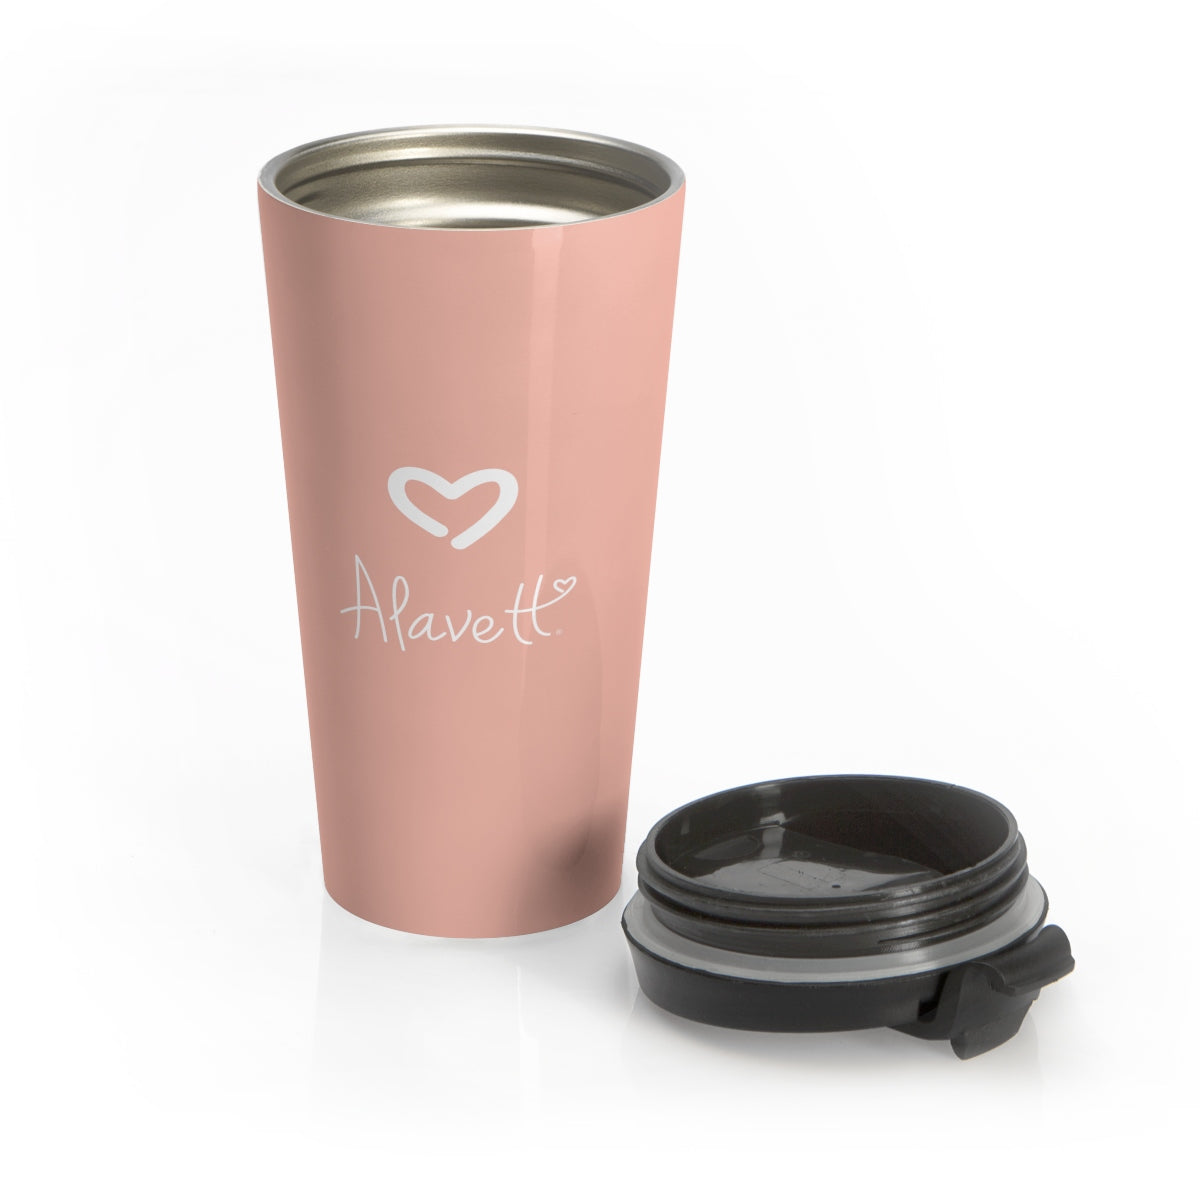 Alavett - Stainless Steel Travel Mug